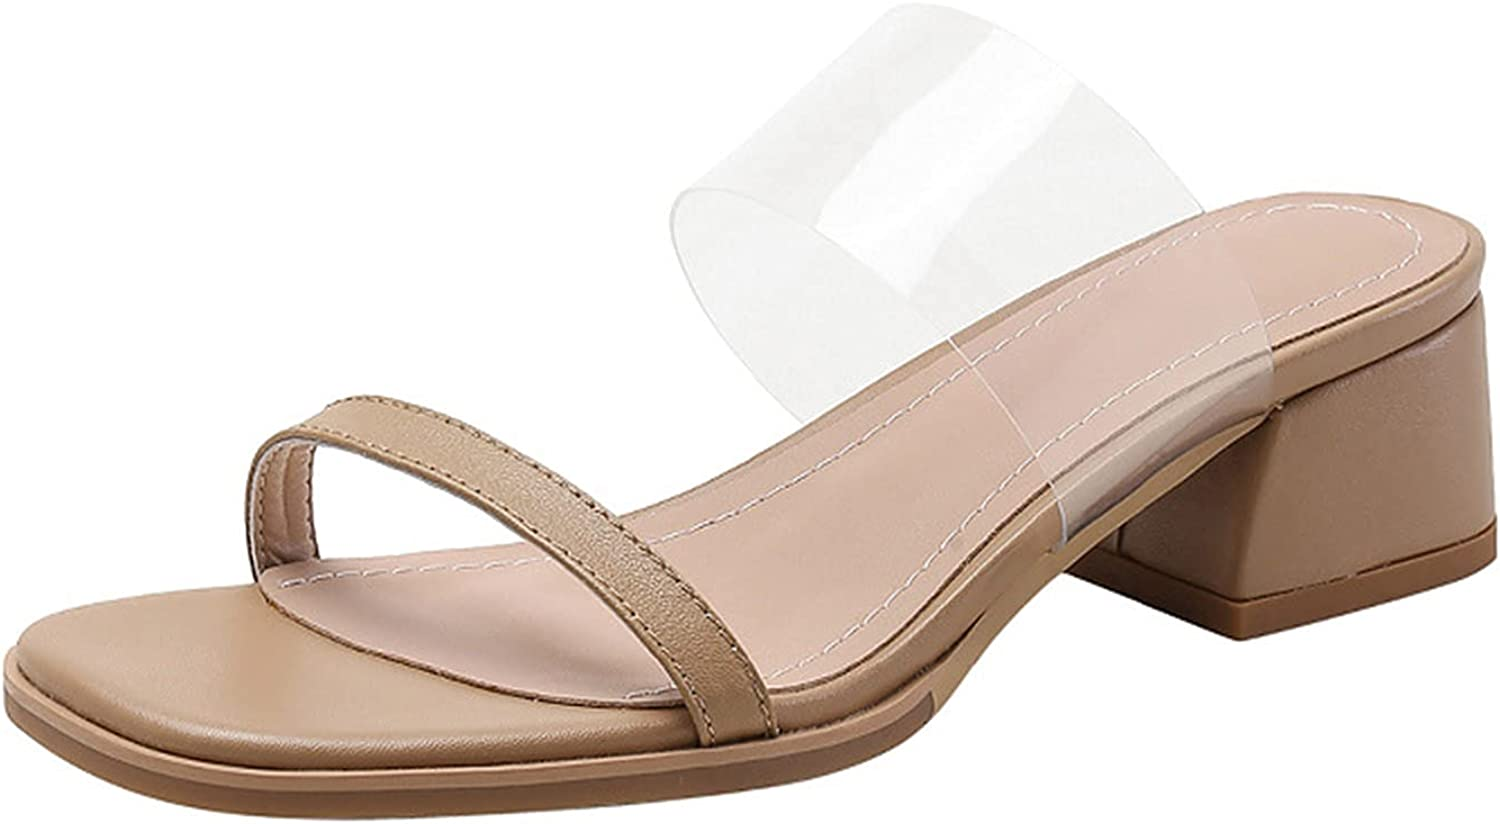 Heels for Women Finally popular brand Sandals Our shop most popular with Block Toe Chunky Slip Open On Heel